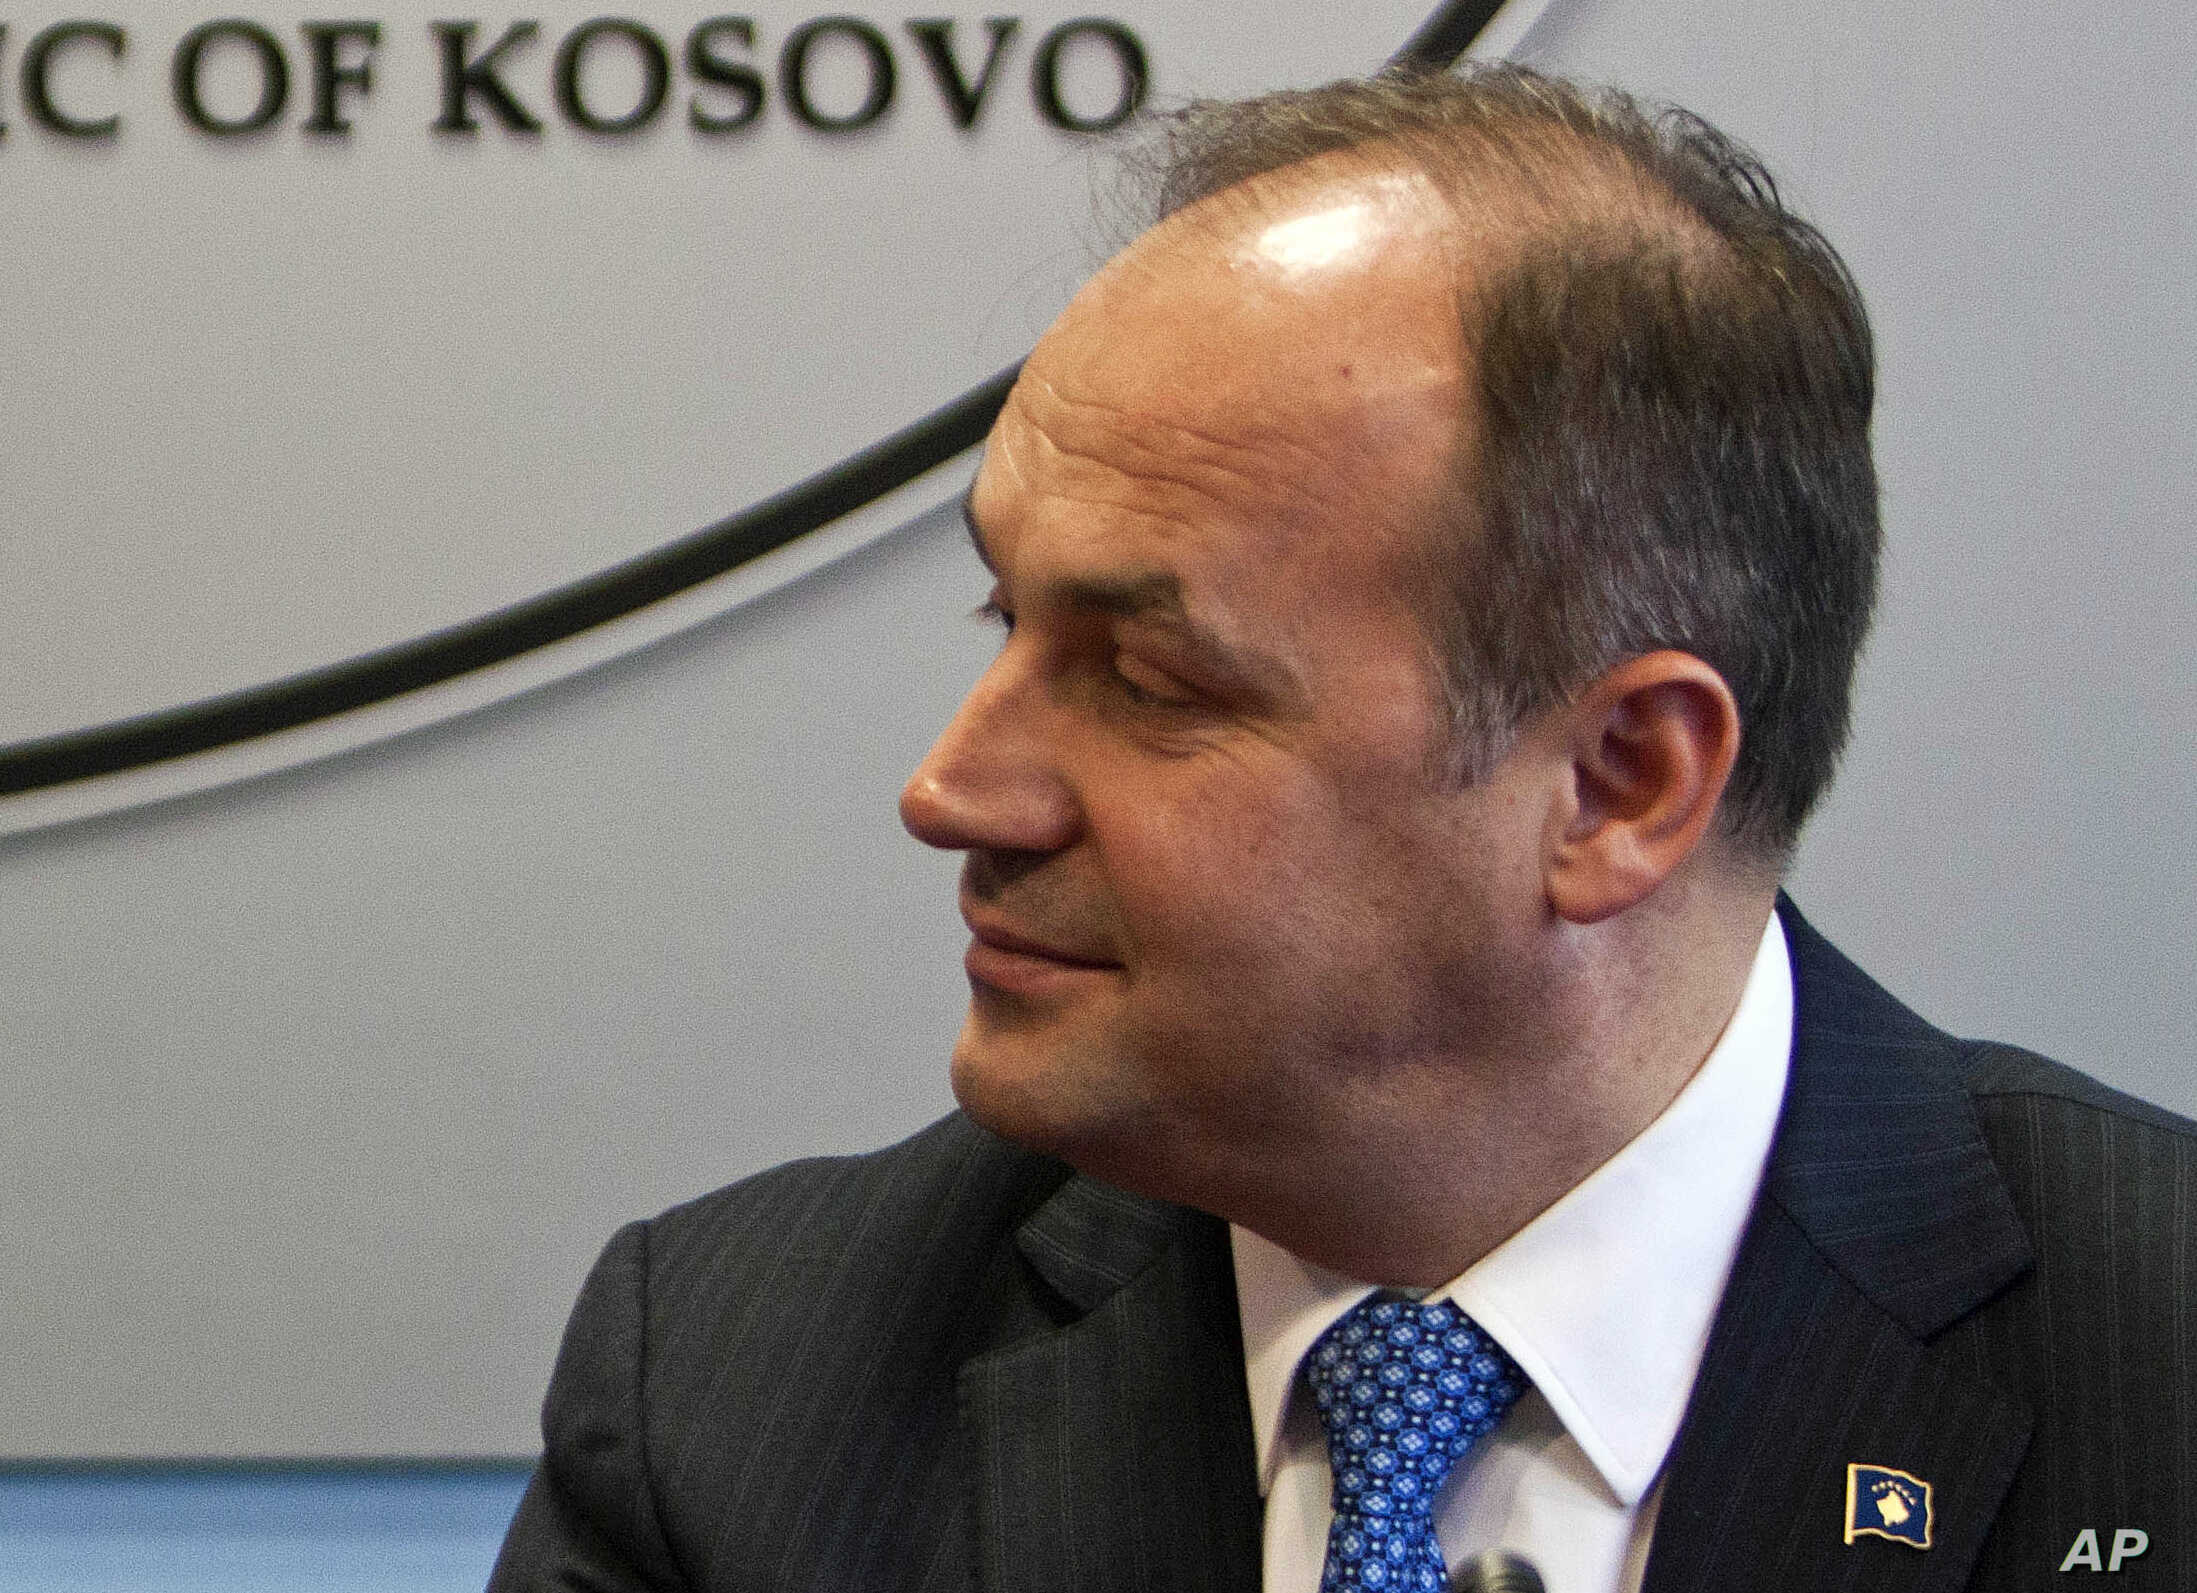 Kosovo FM Makes First-Ever Official Visit to Serbia | Voice of